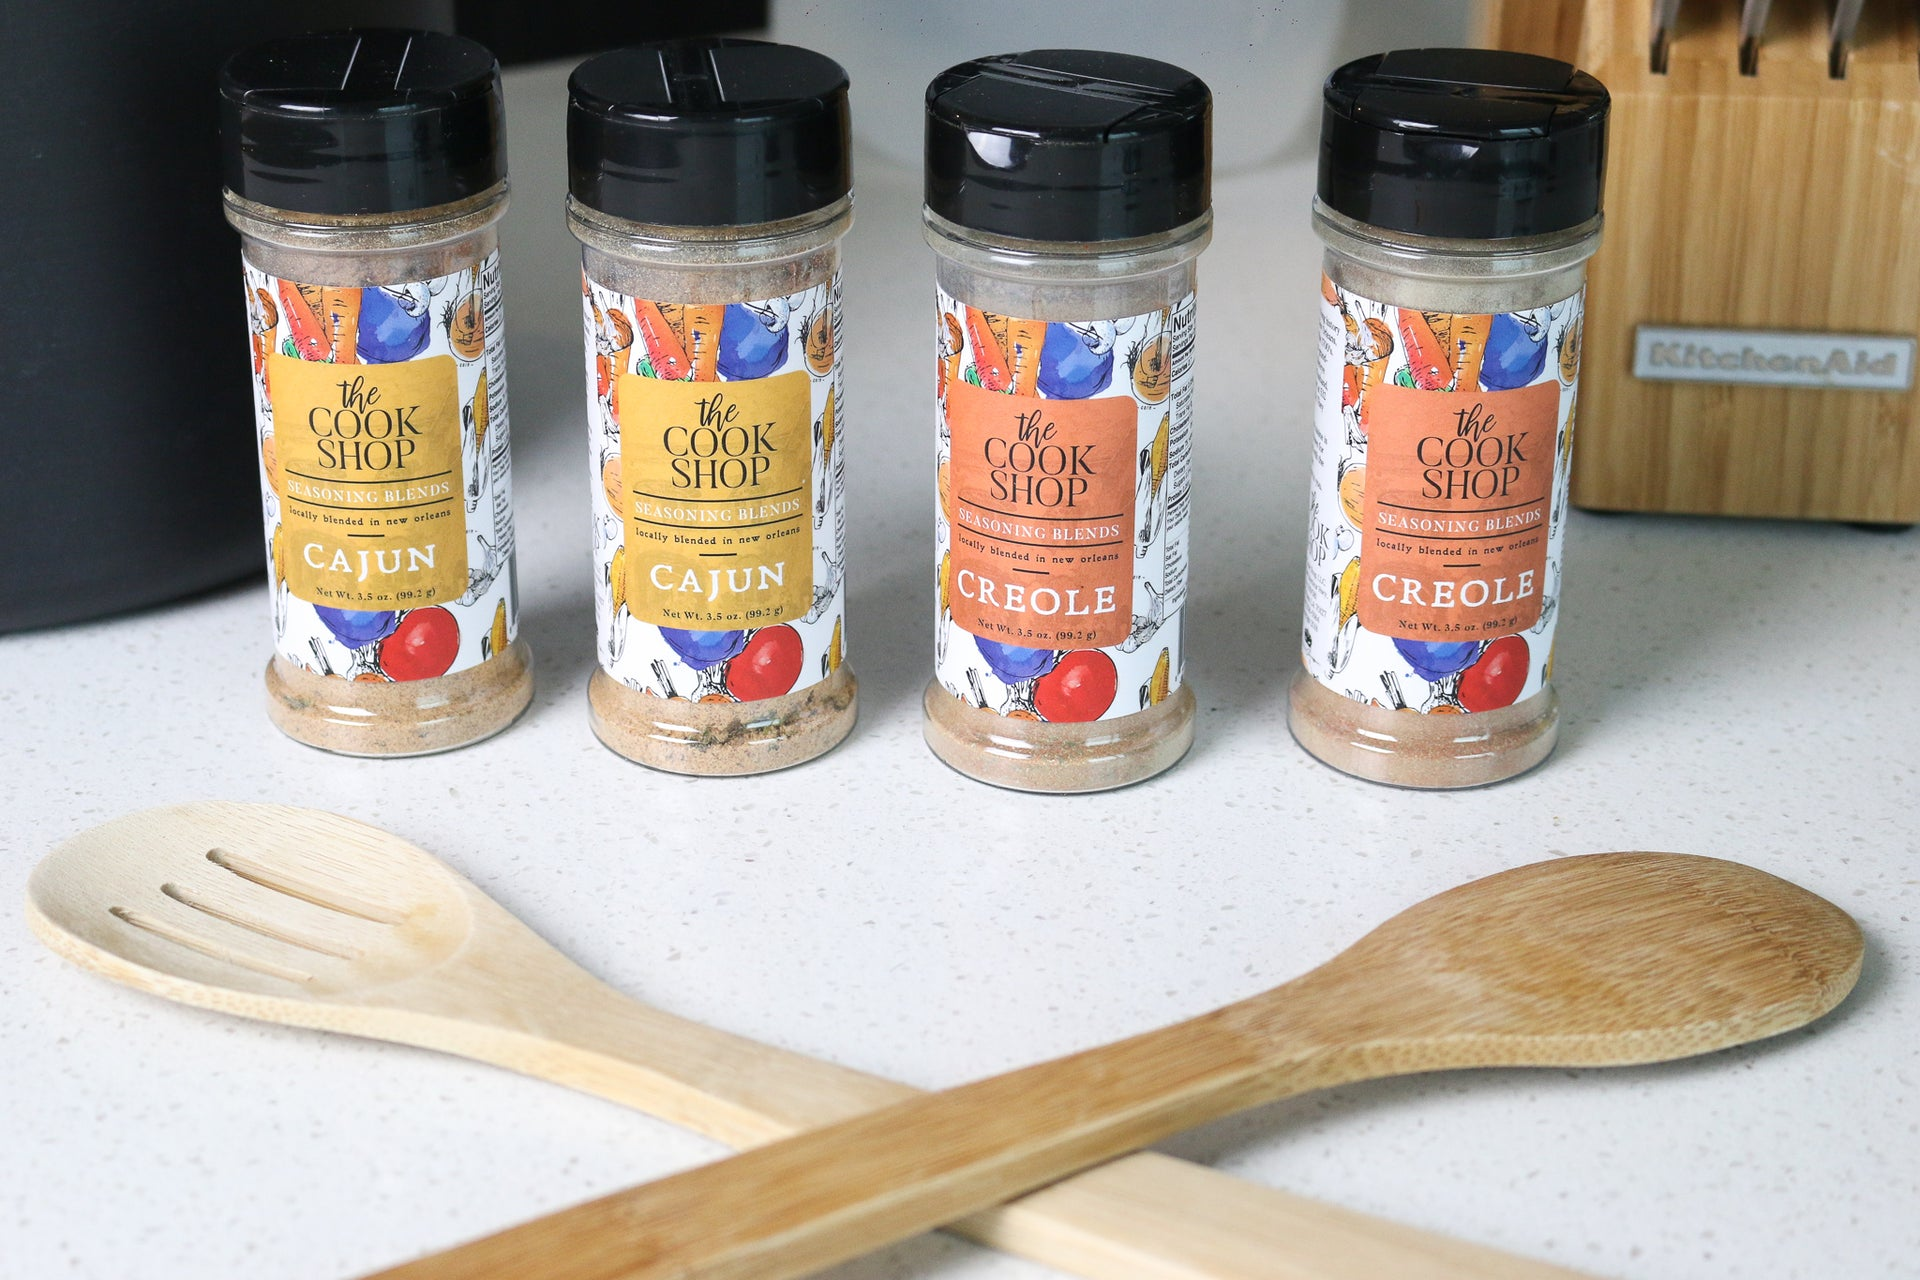 The Cook Shop Seasonings